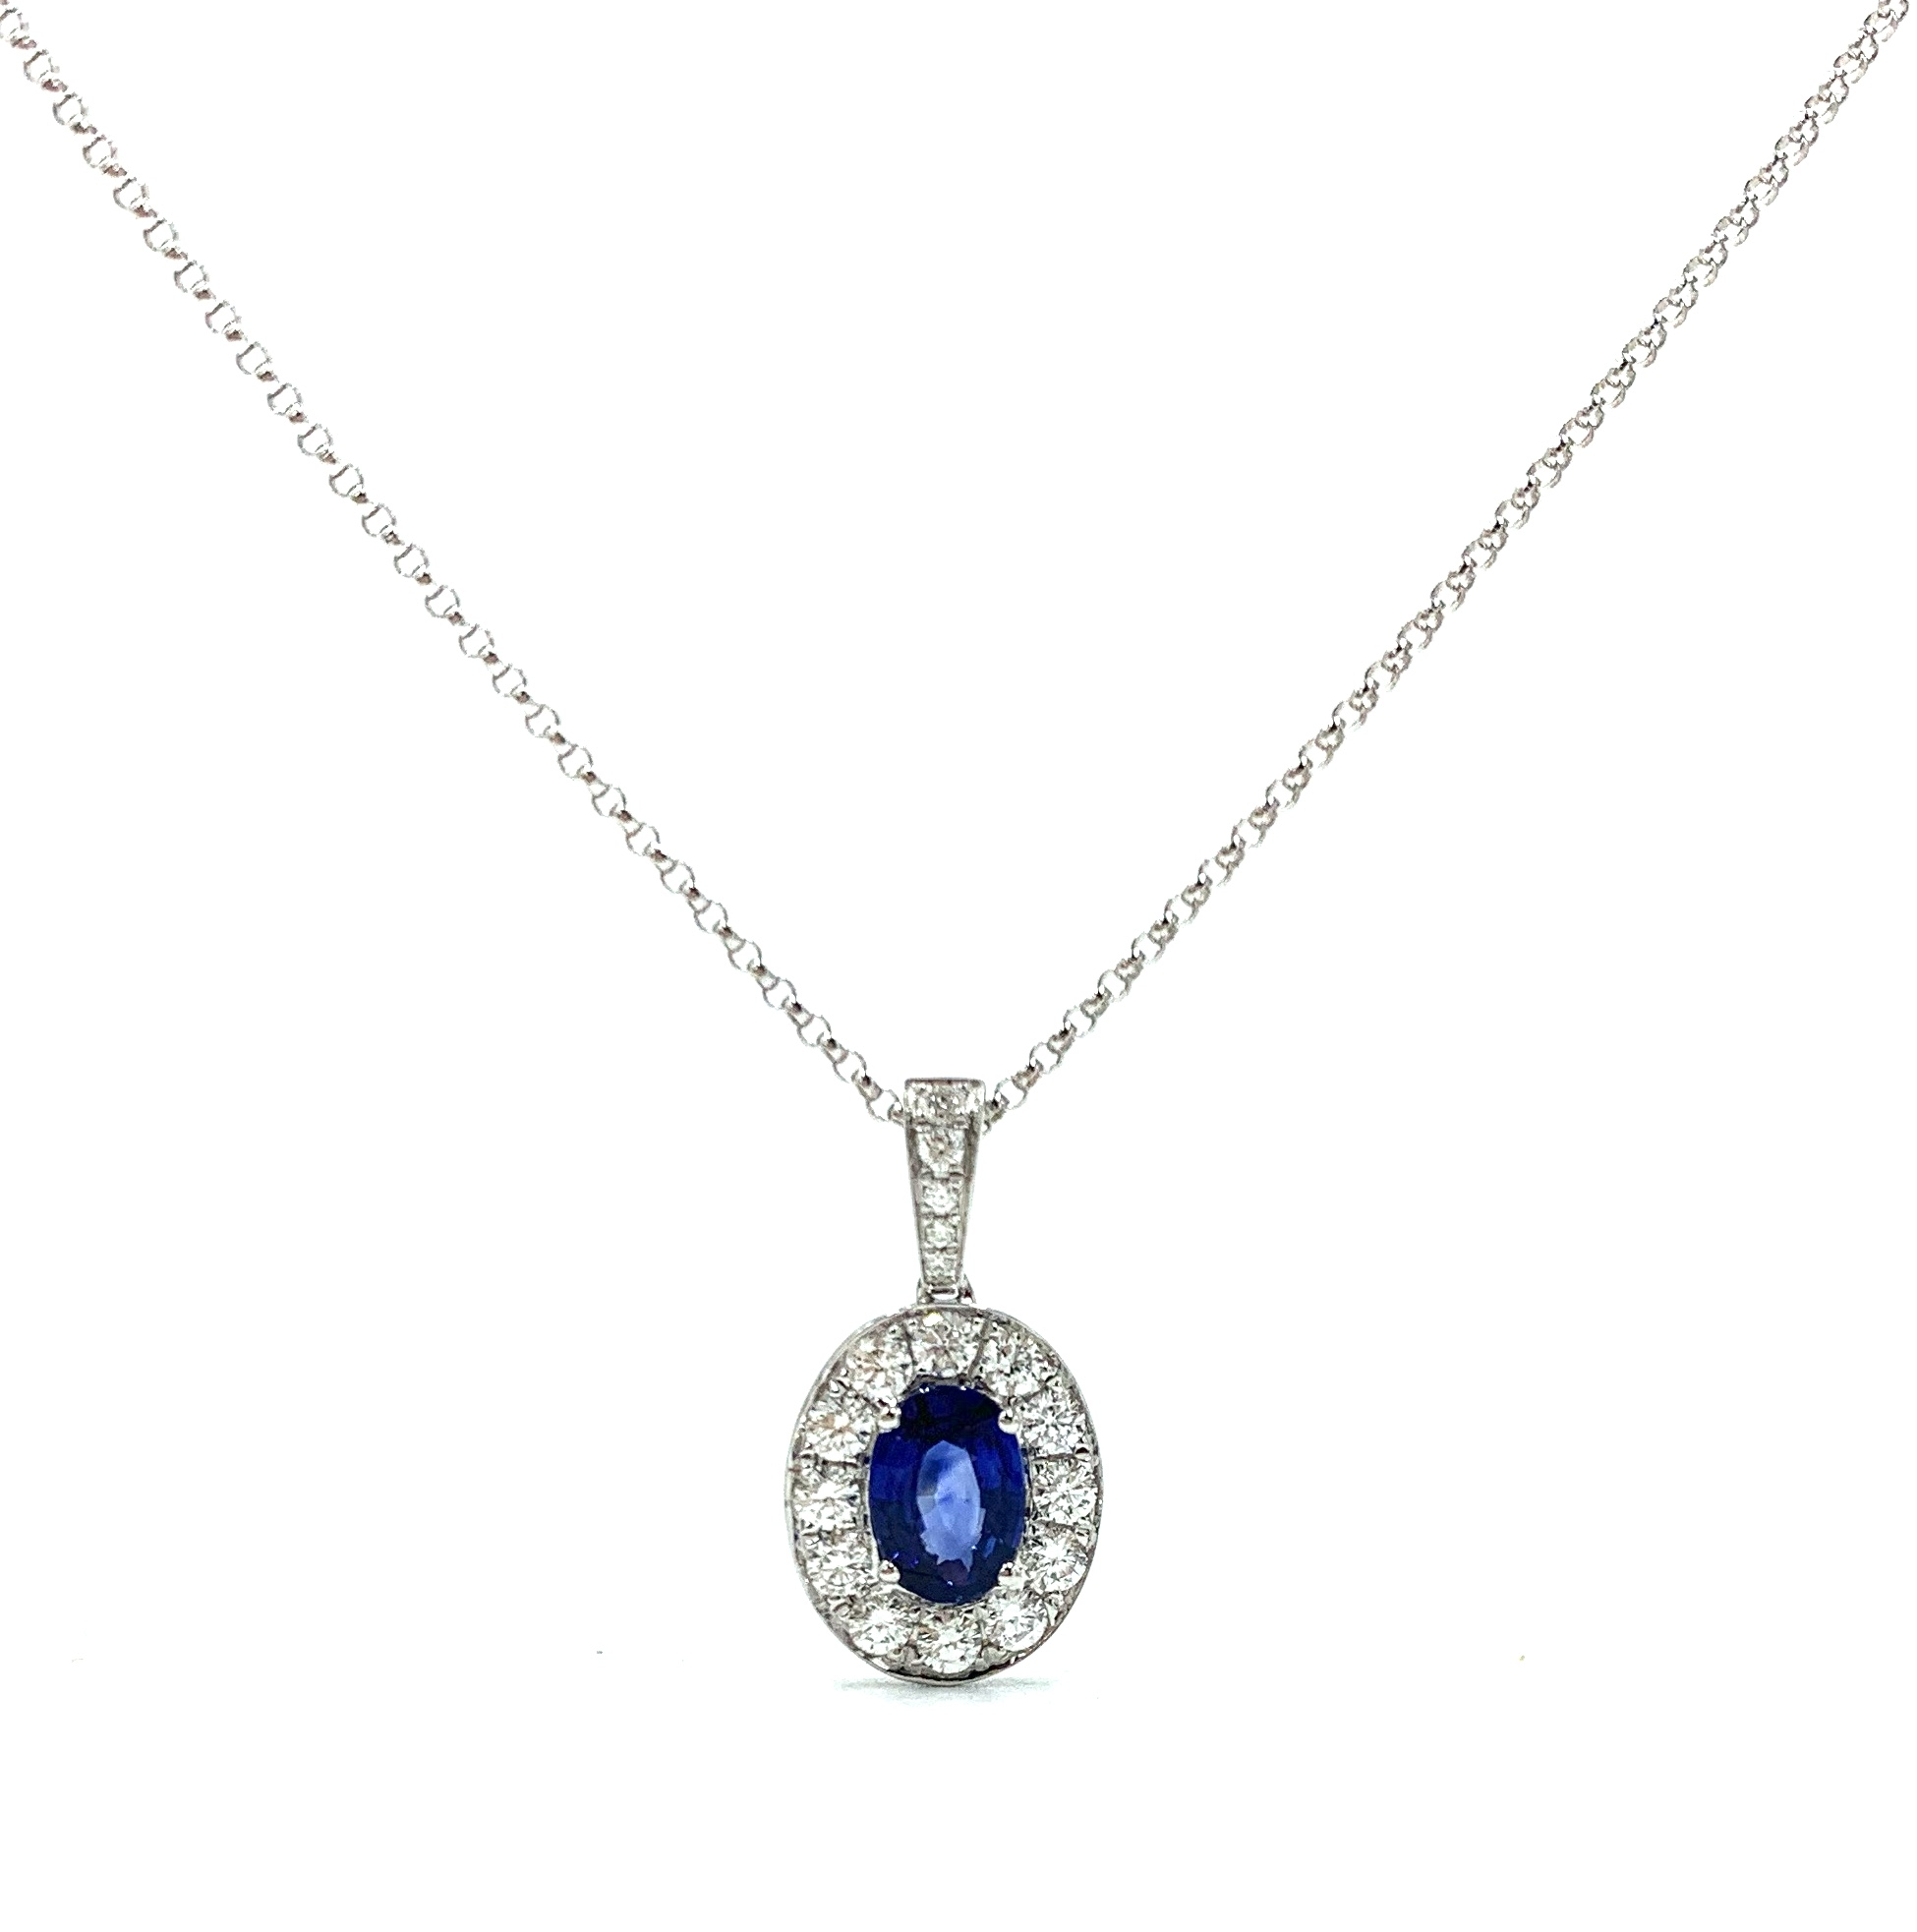 18ct White Gold Oval